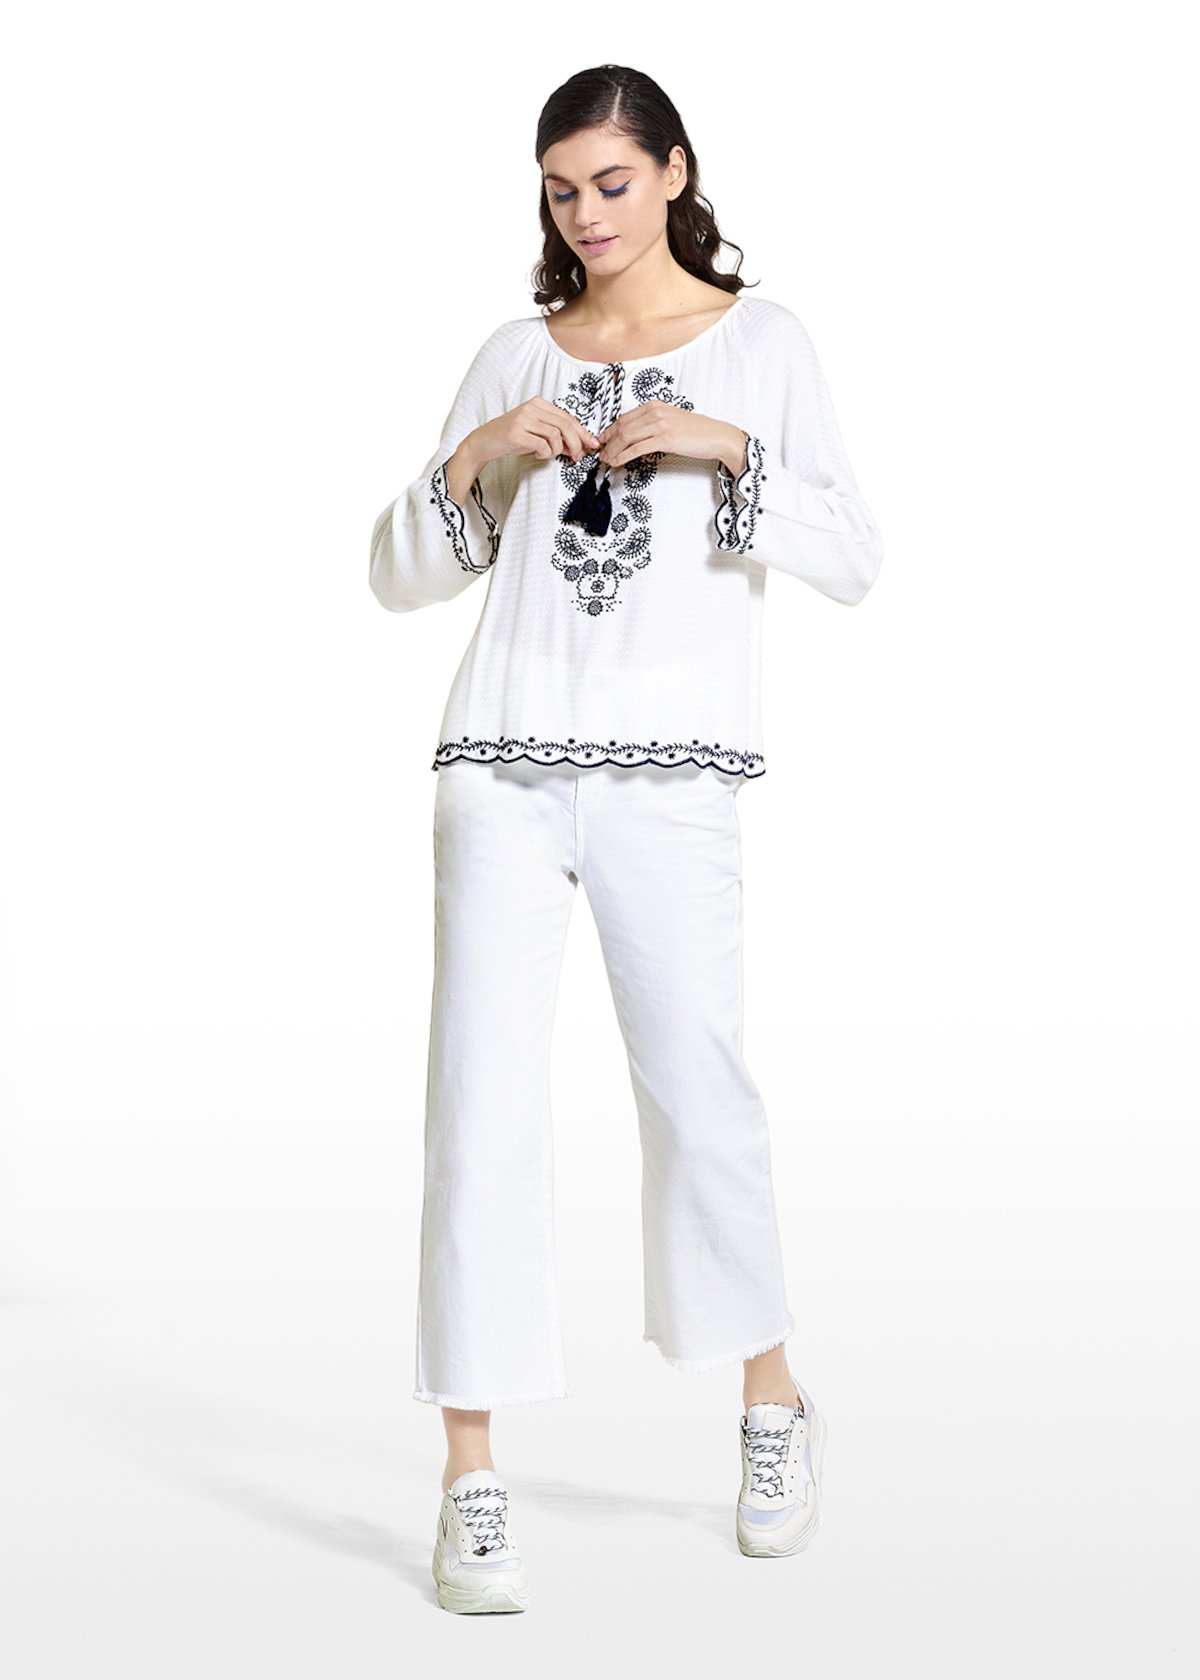 Churl blouse with central embroidery - White - Woman